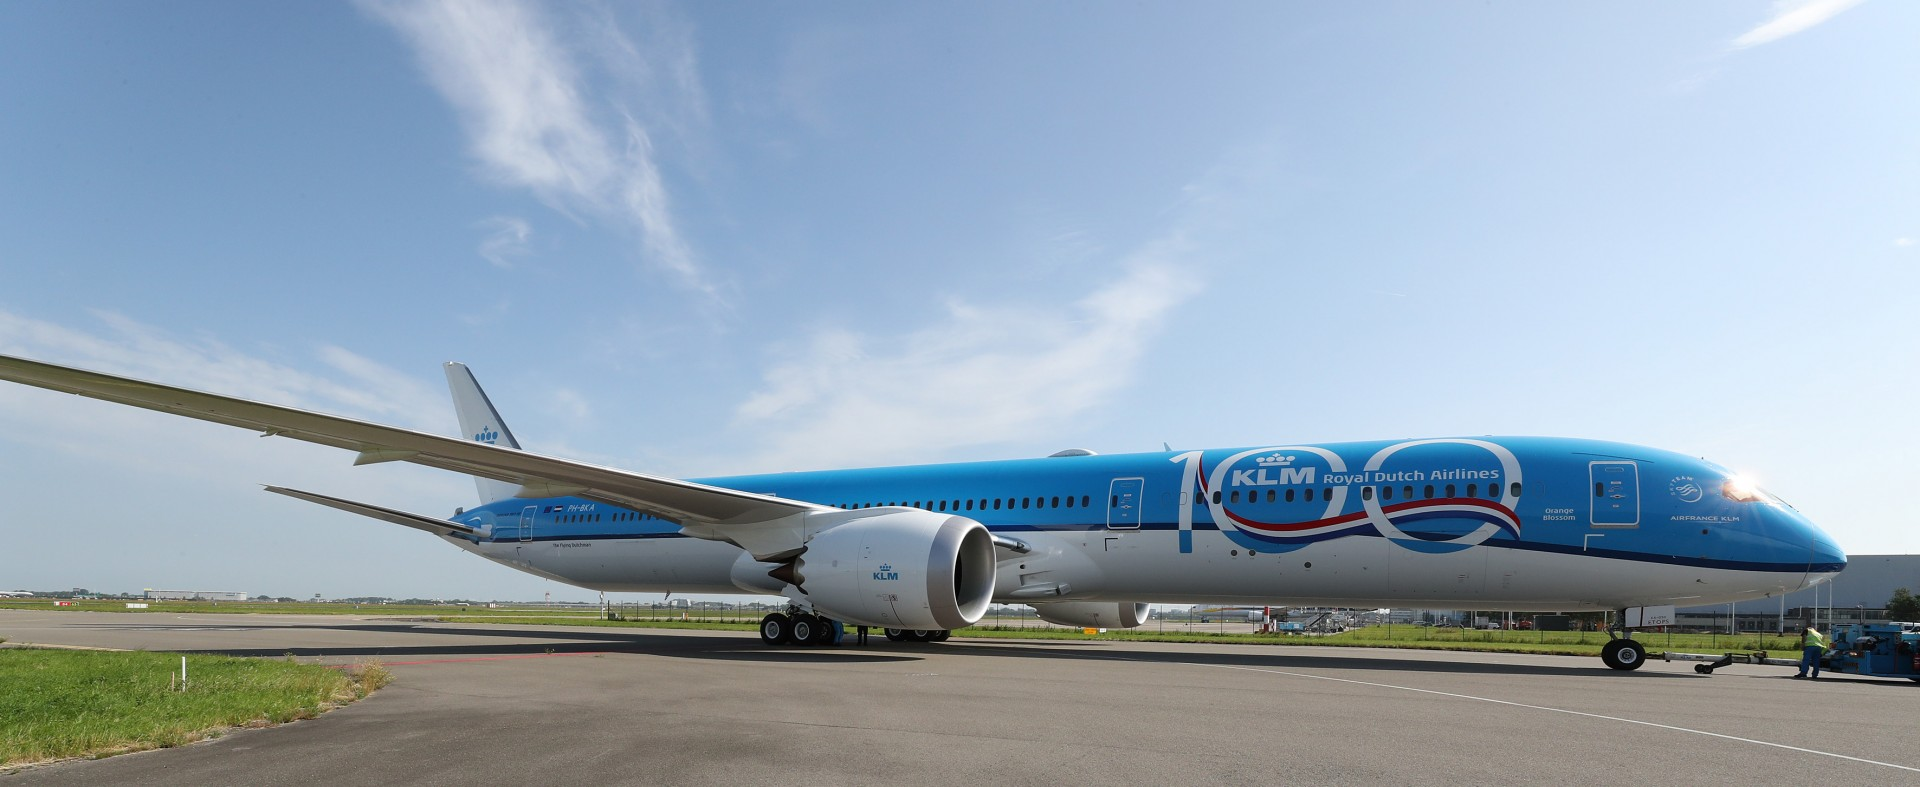 It's here: KLM's first Boeing 787-10 Dreamliner!